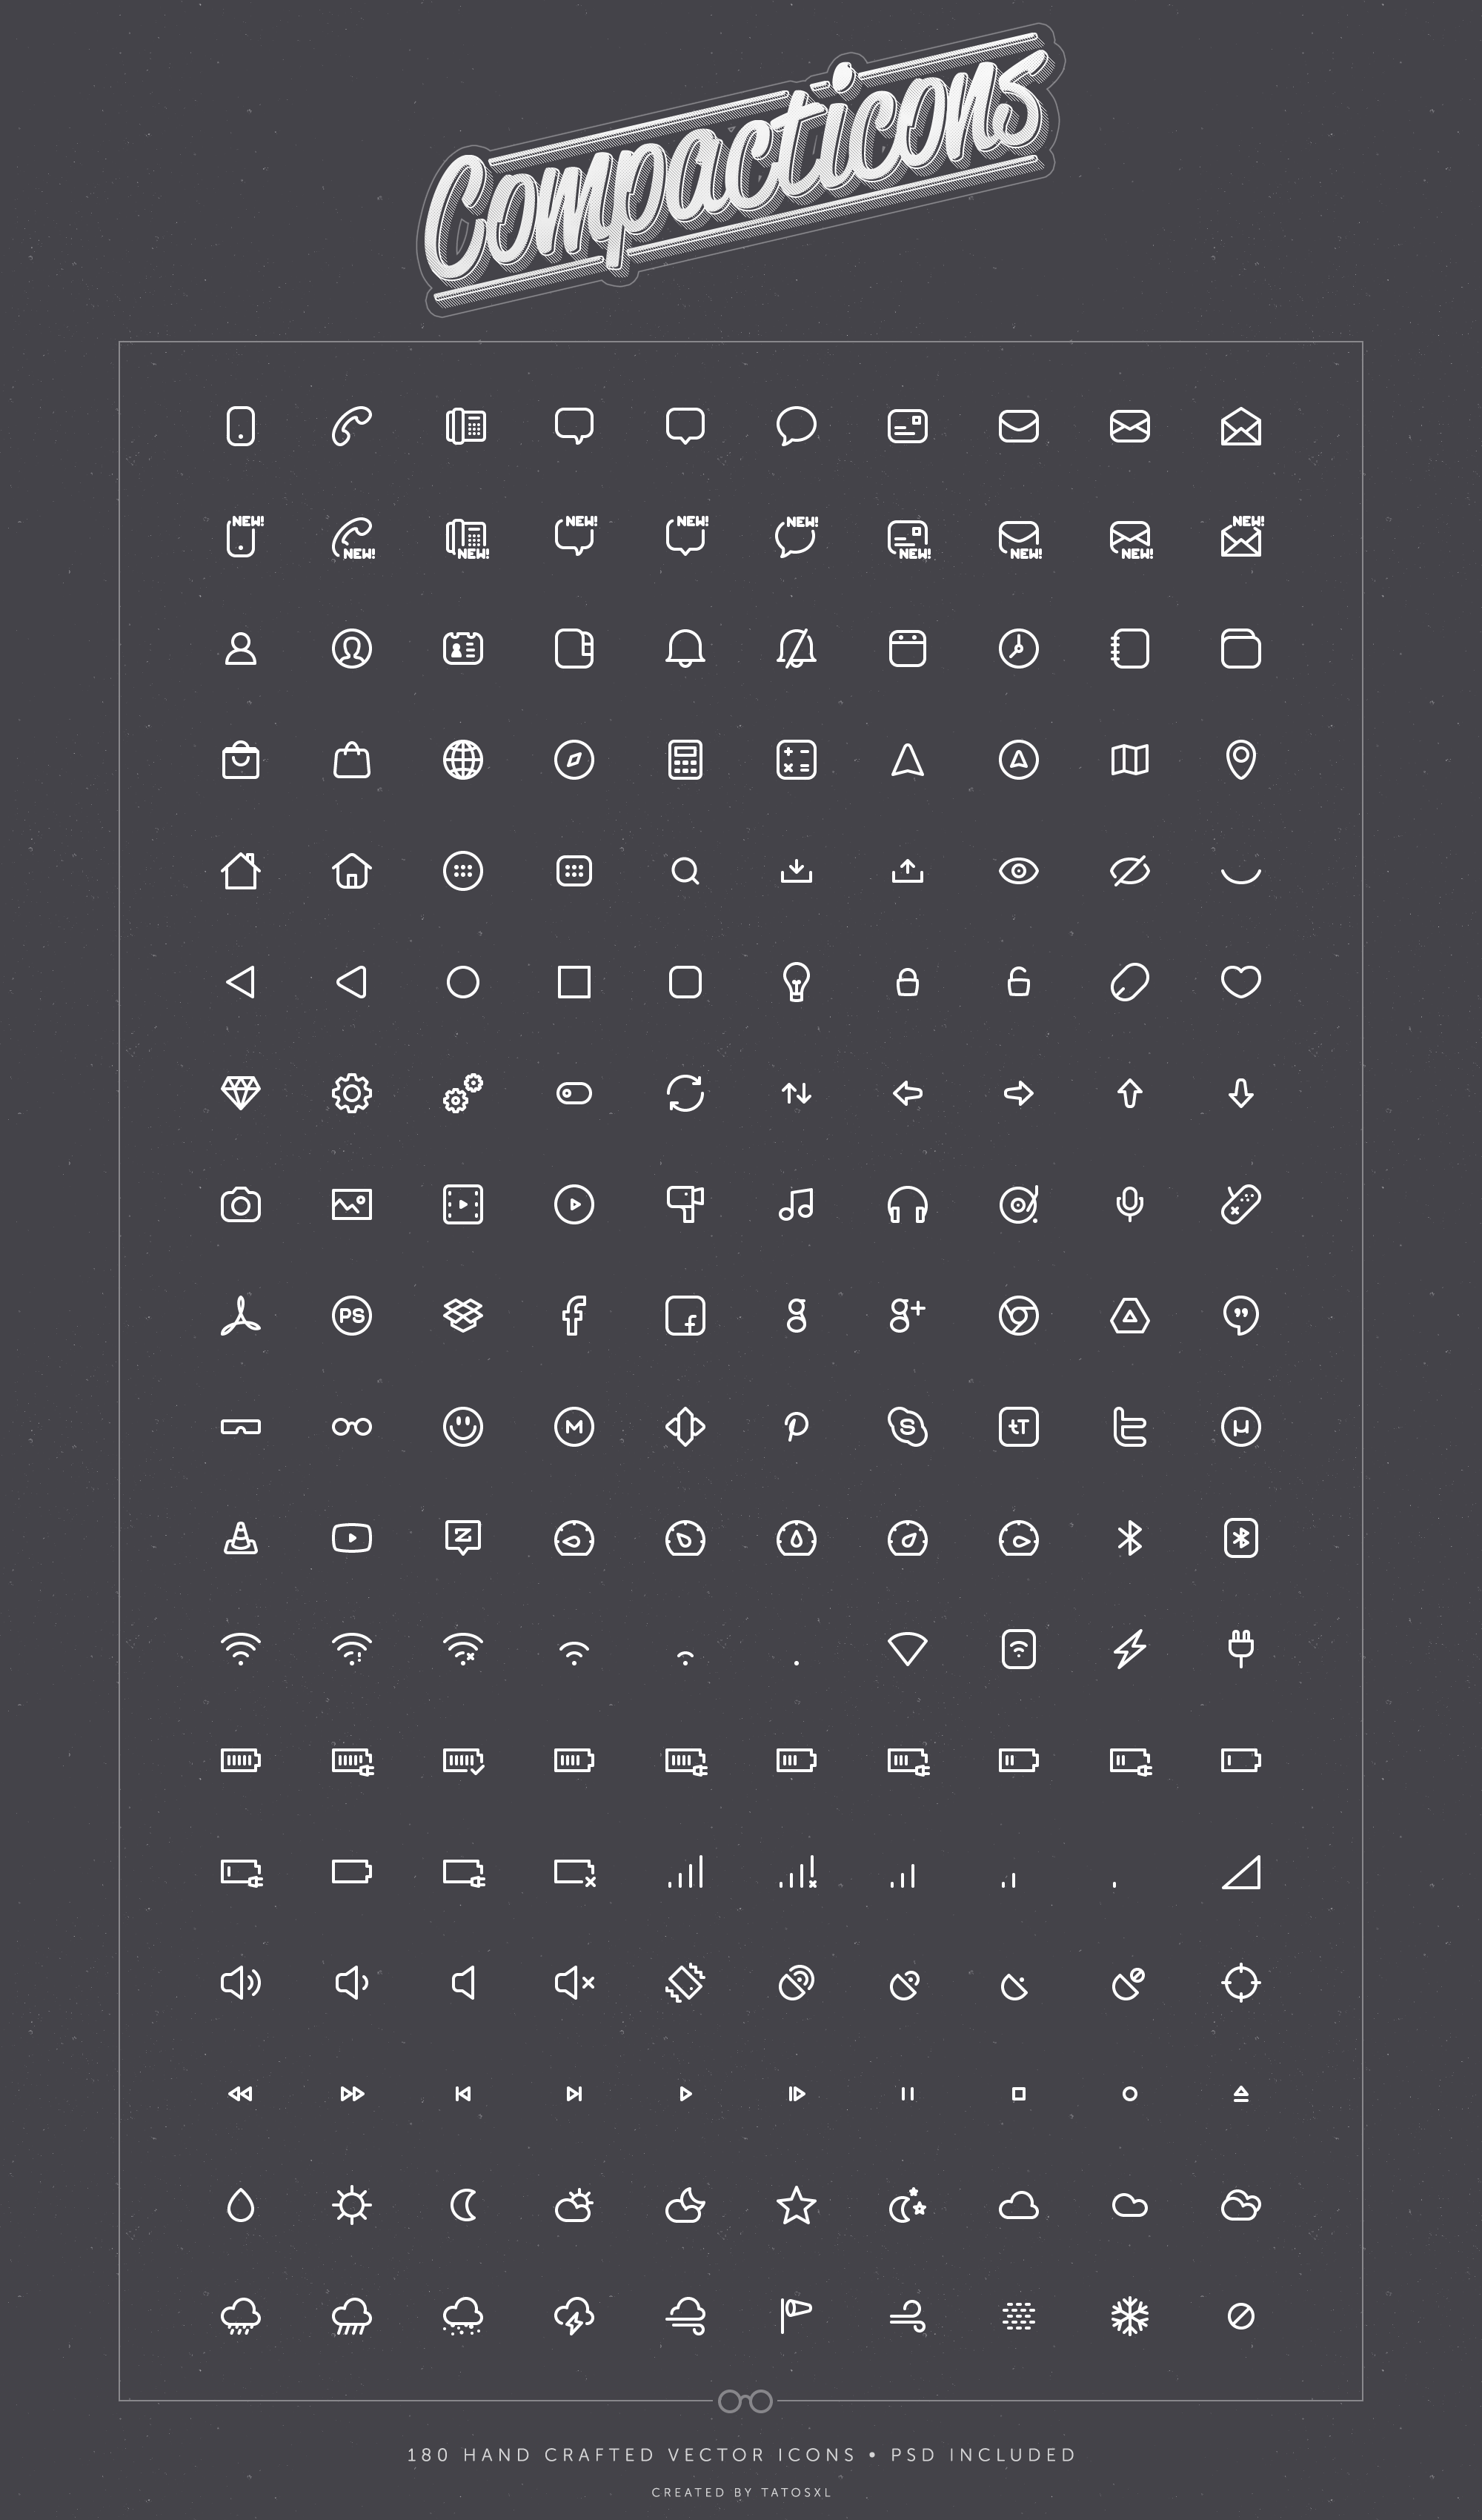 compacticons-mobile-icons